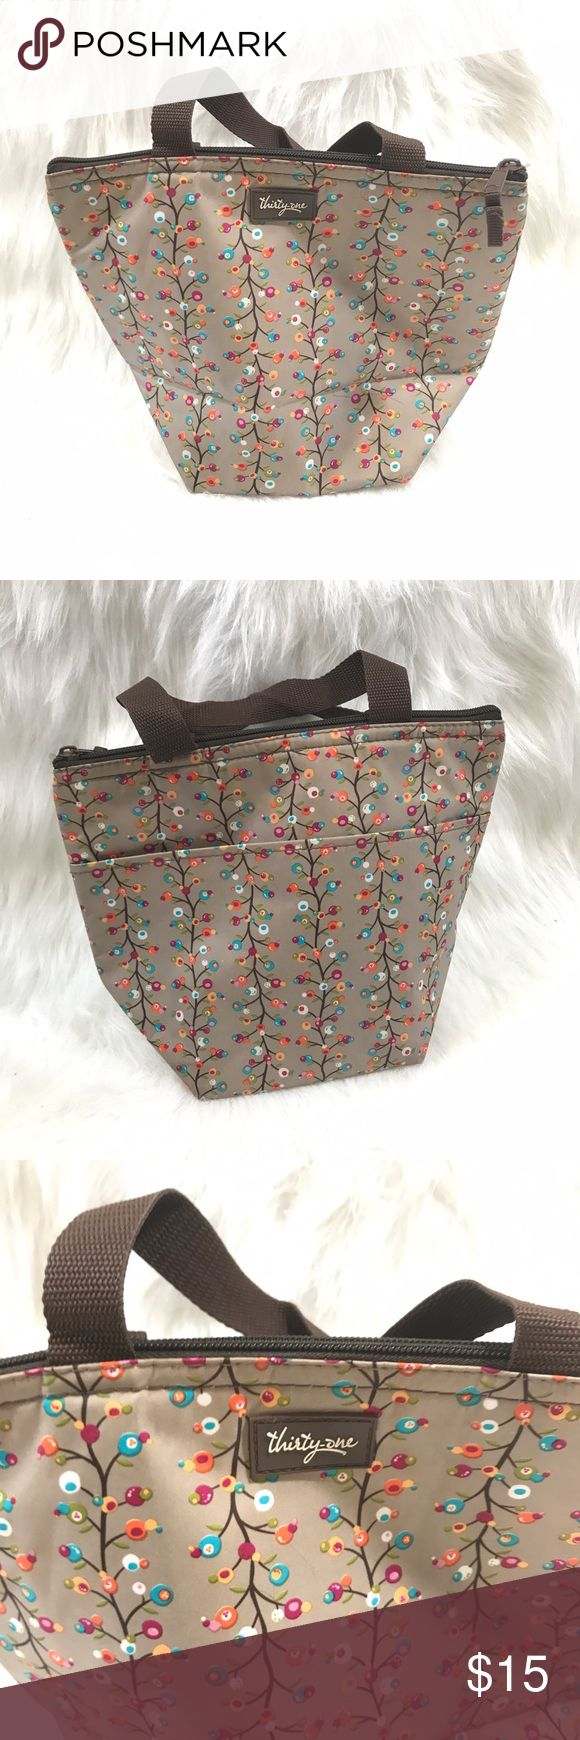 THIRTY ONE FLORAL BERRY ZIP TOP LUNCH BAG TOTE Good condition thirty one lunch bag with cute design. Inside keeps drinks and food cool. Outside pocket and a zip top. Great for the beach! thirty one Bags